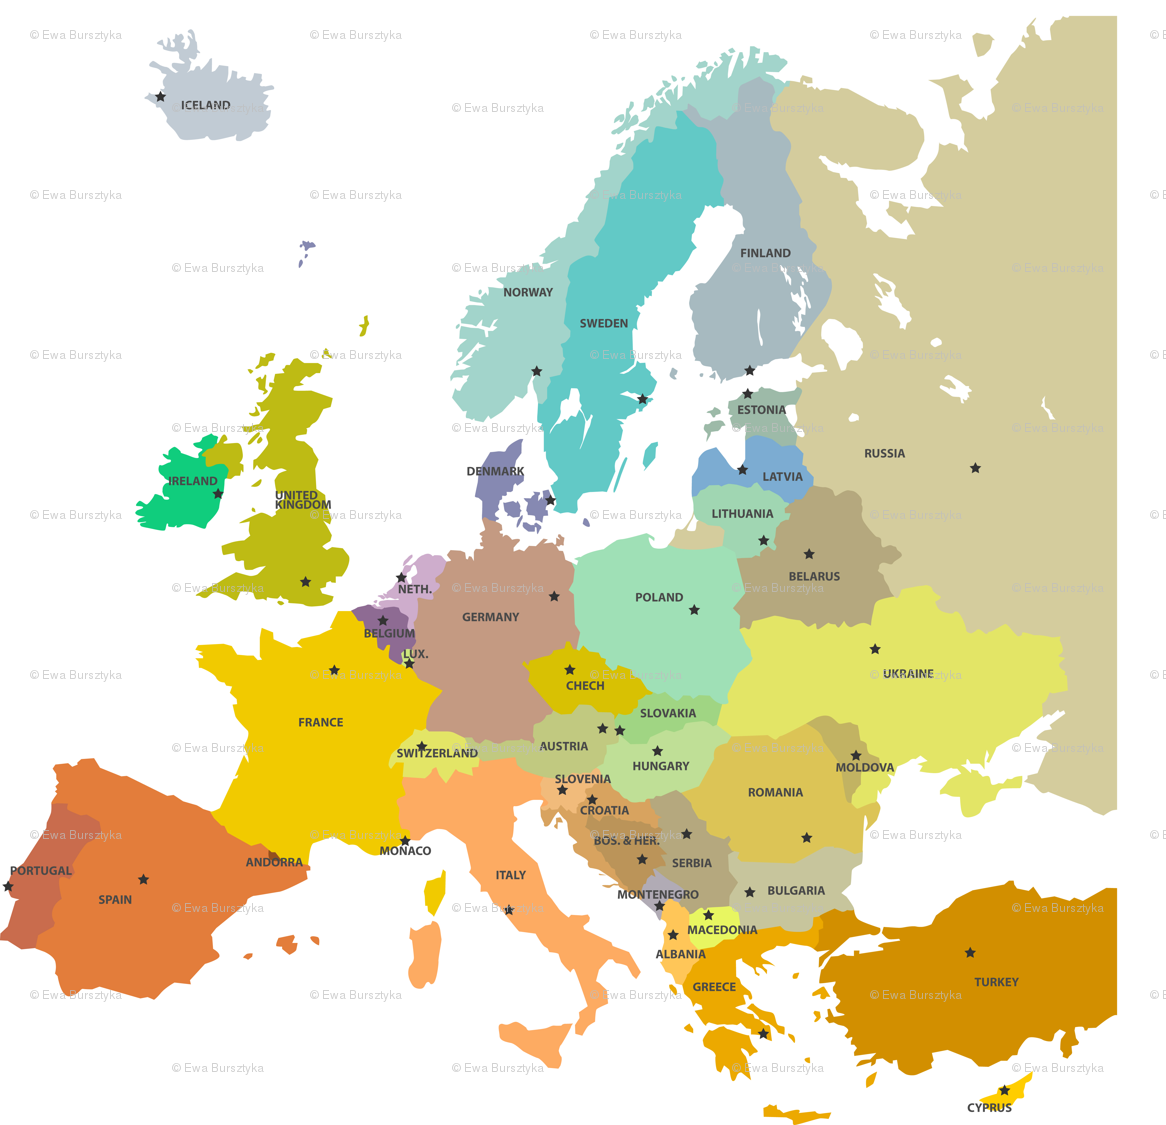 Desktop Wallpaper World Map: Map Of Europe Wallpaper